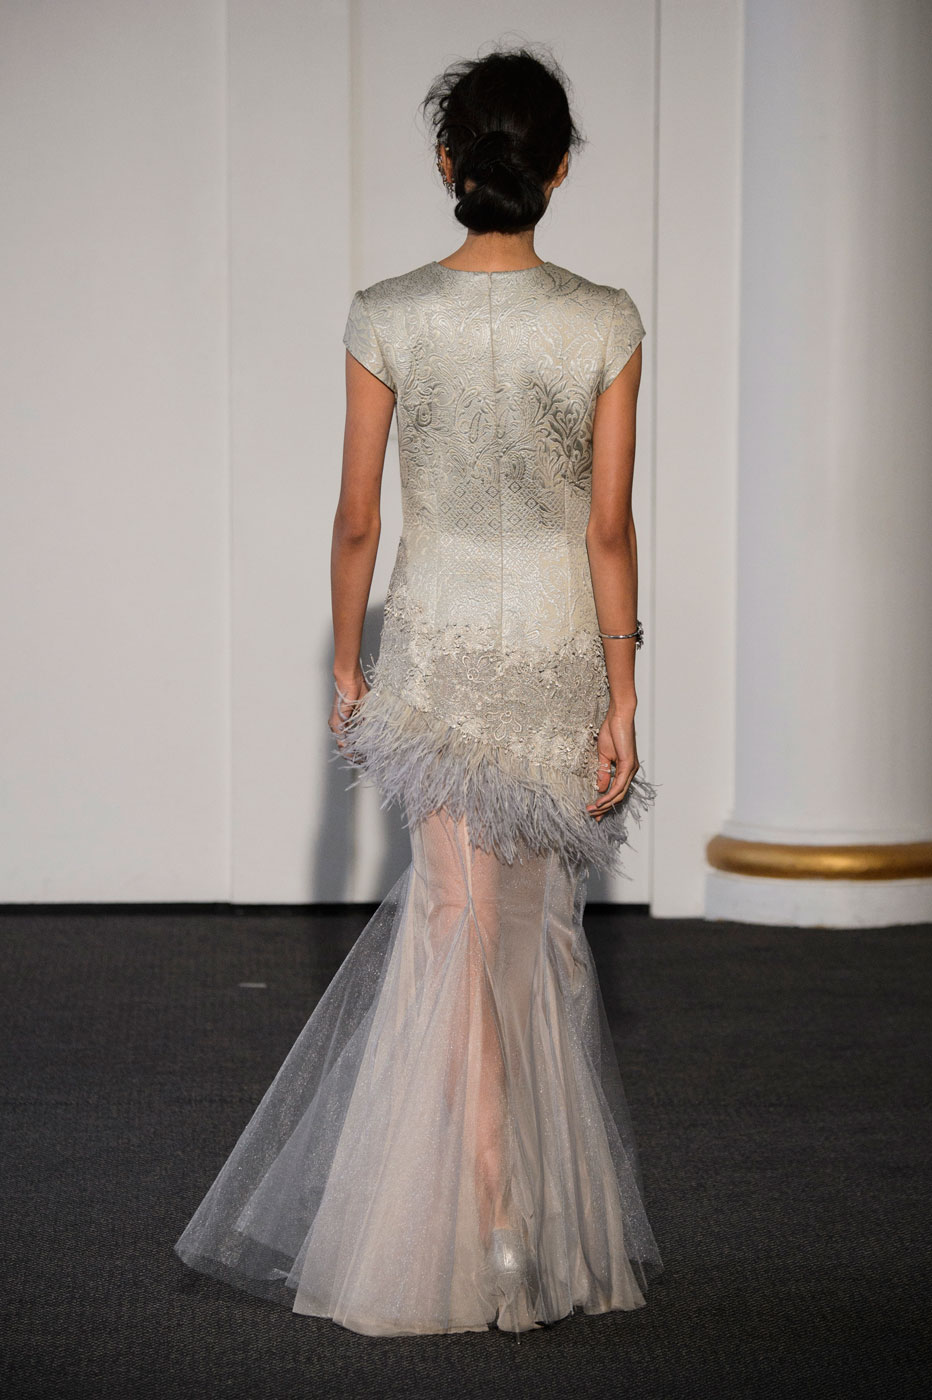 Busardi-fashion-runway-show-haute-couture-paris-spring-2015-the-impression-60